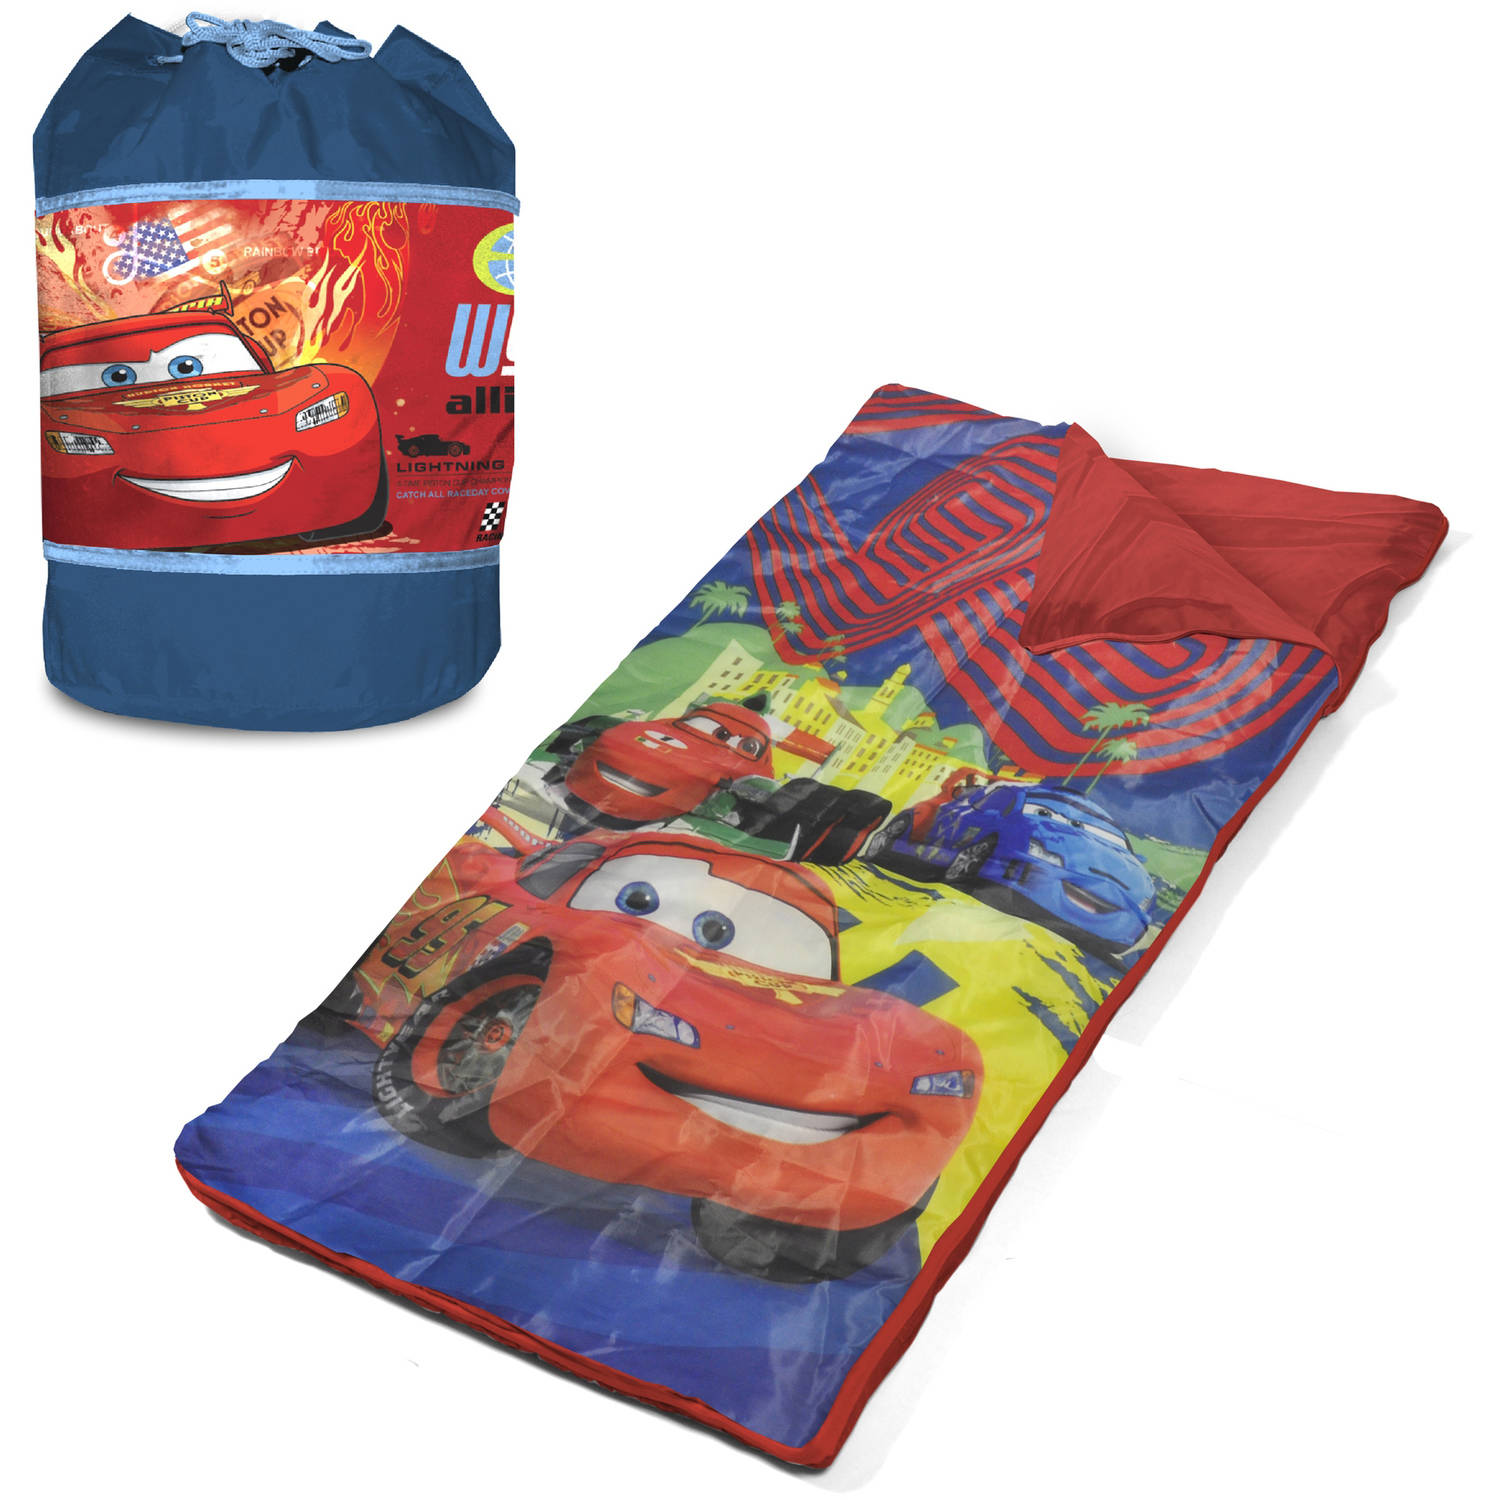 Disney Cars Slumber Duffle with Bonus Sleeping Bag ...